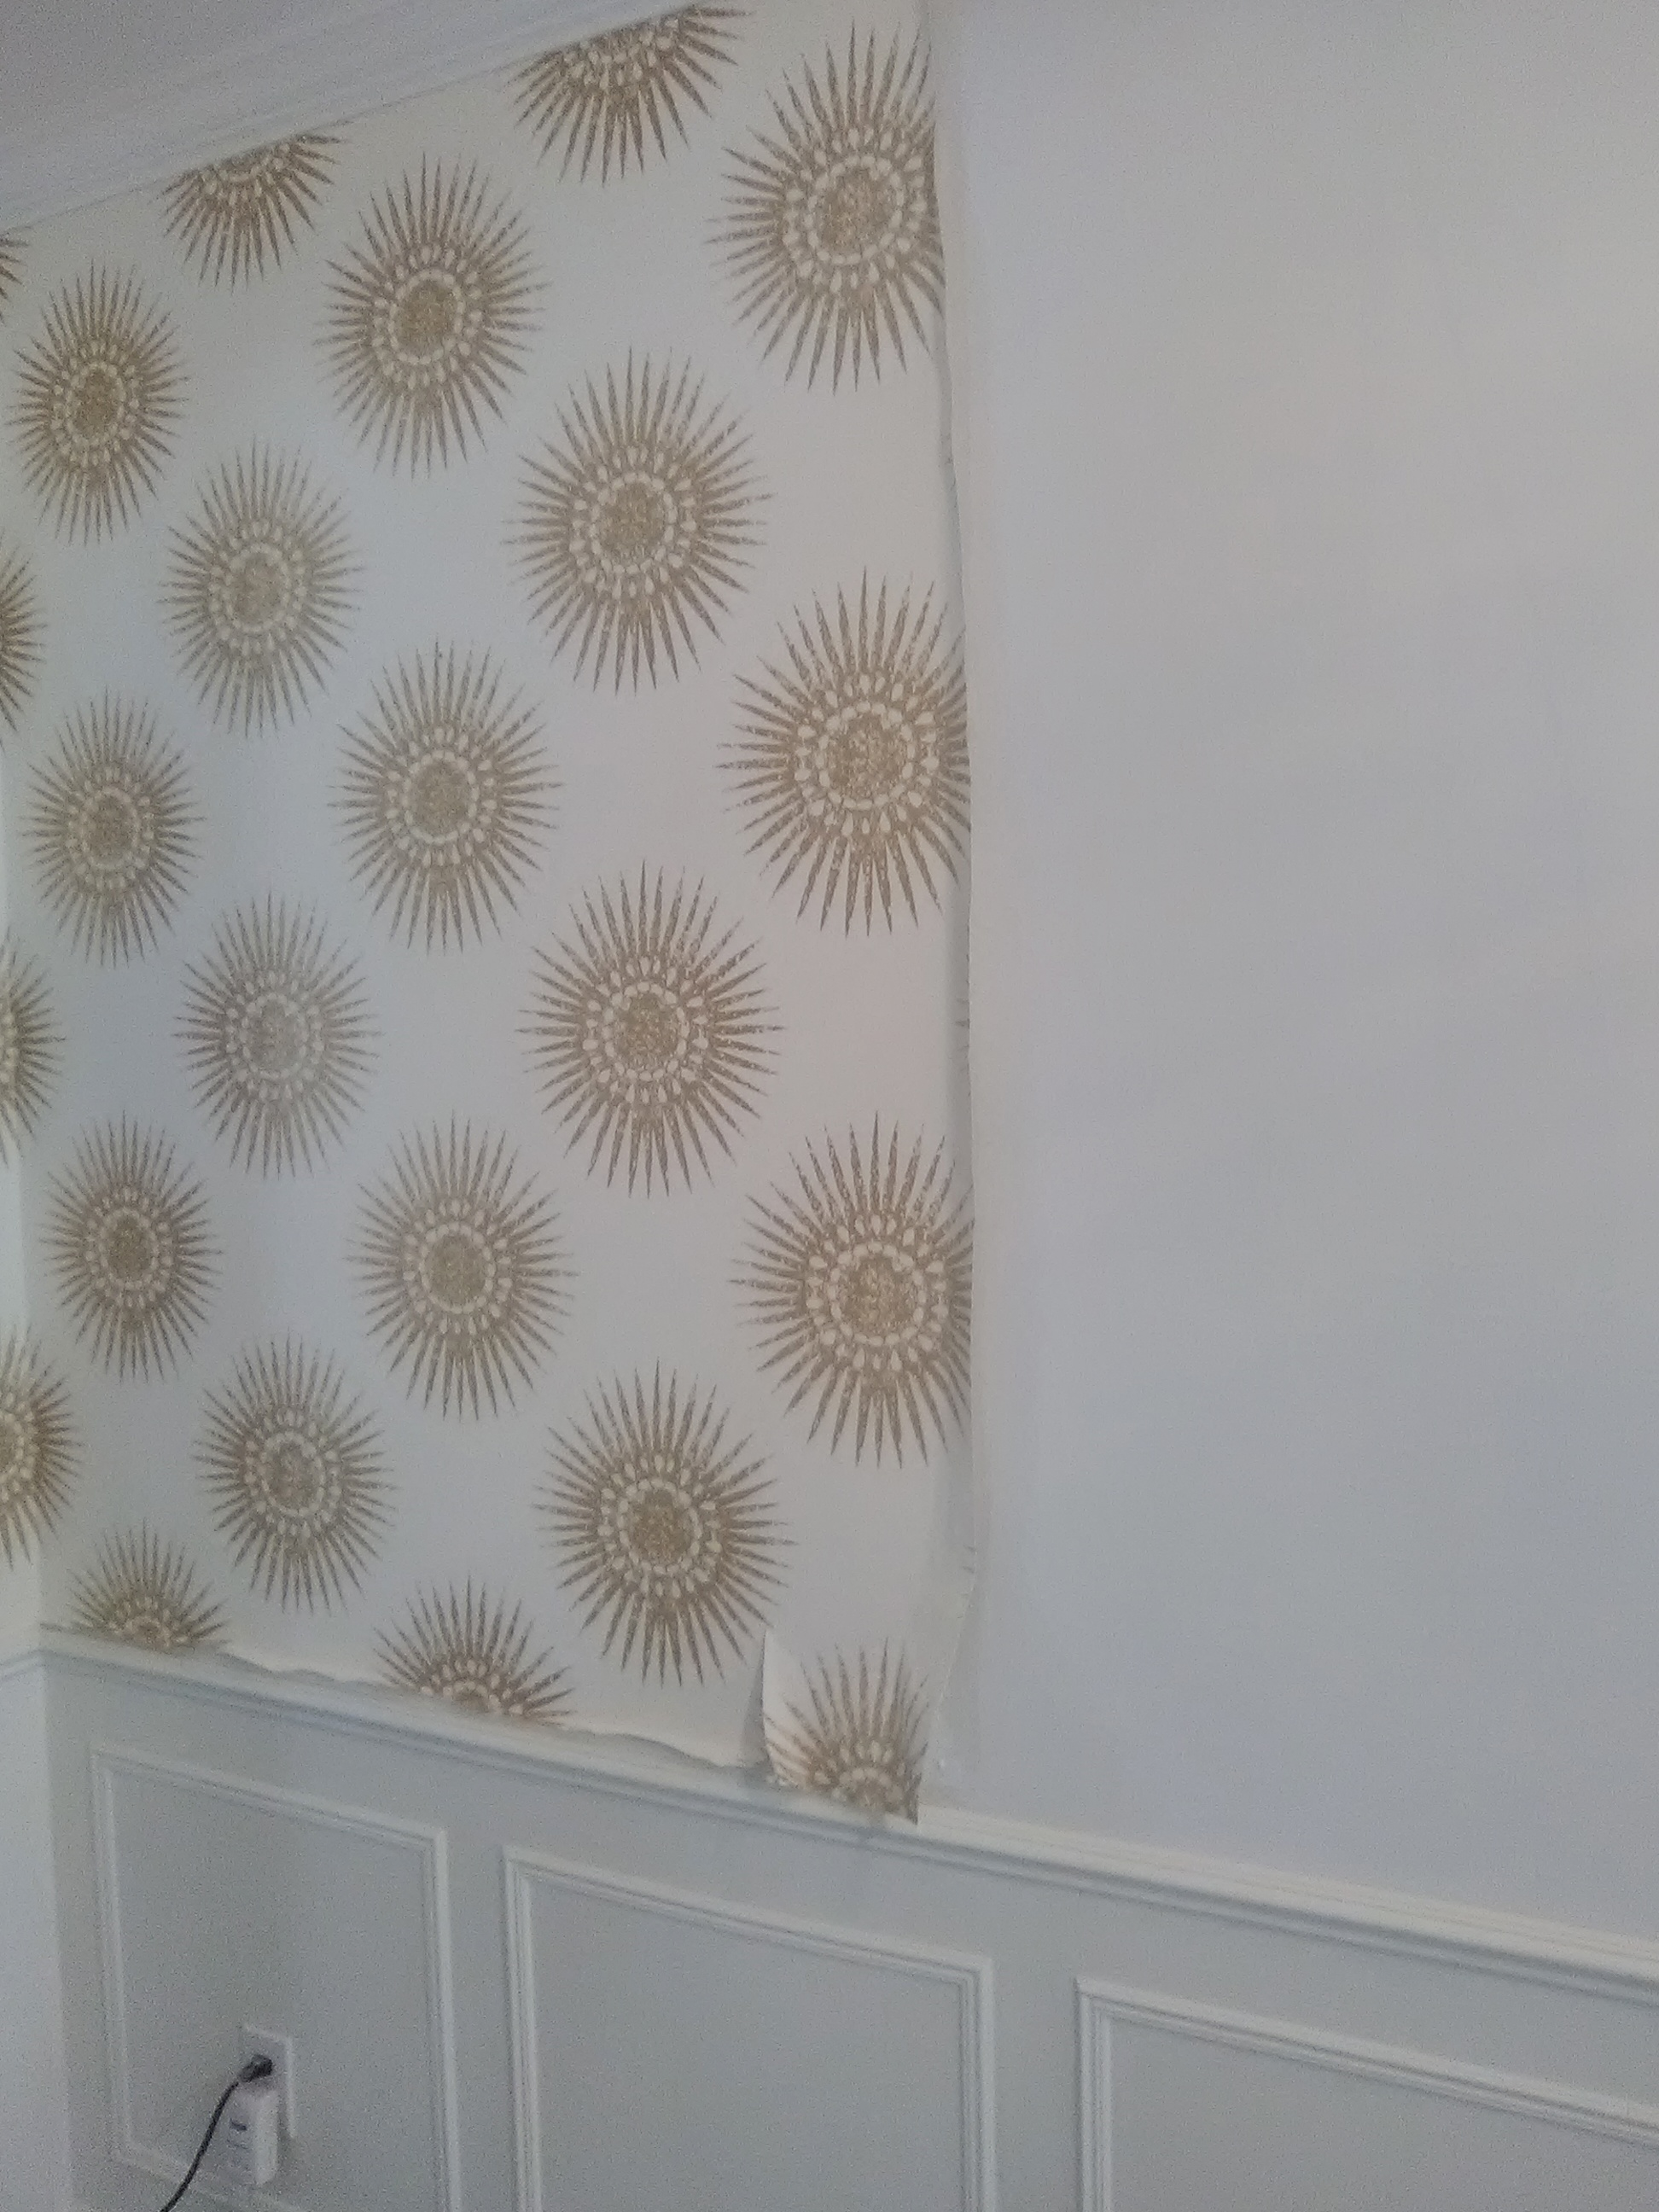 I hung this sunburst medallion wallpaper in an entry in west Meyerland a year or two ago. Originally, there was a doorway in the middle of this wall that ...